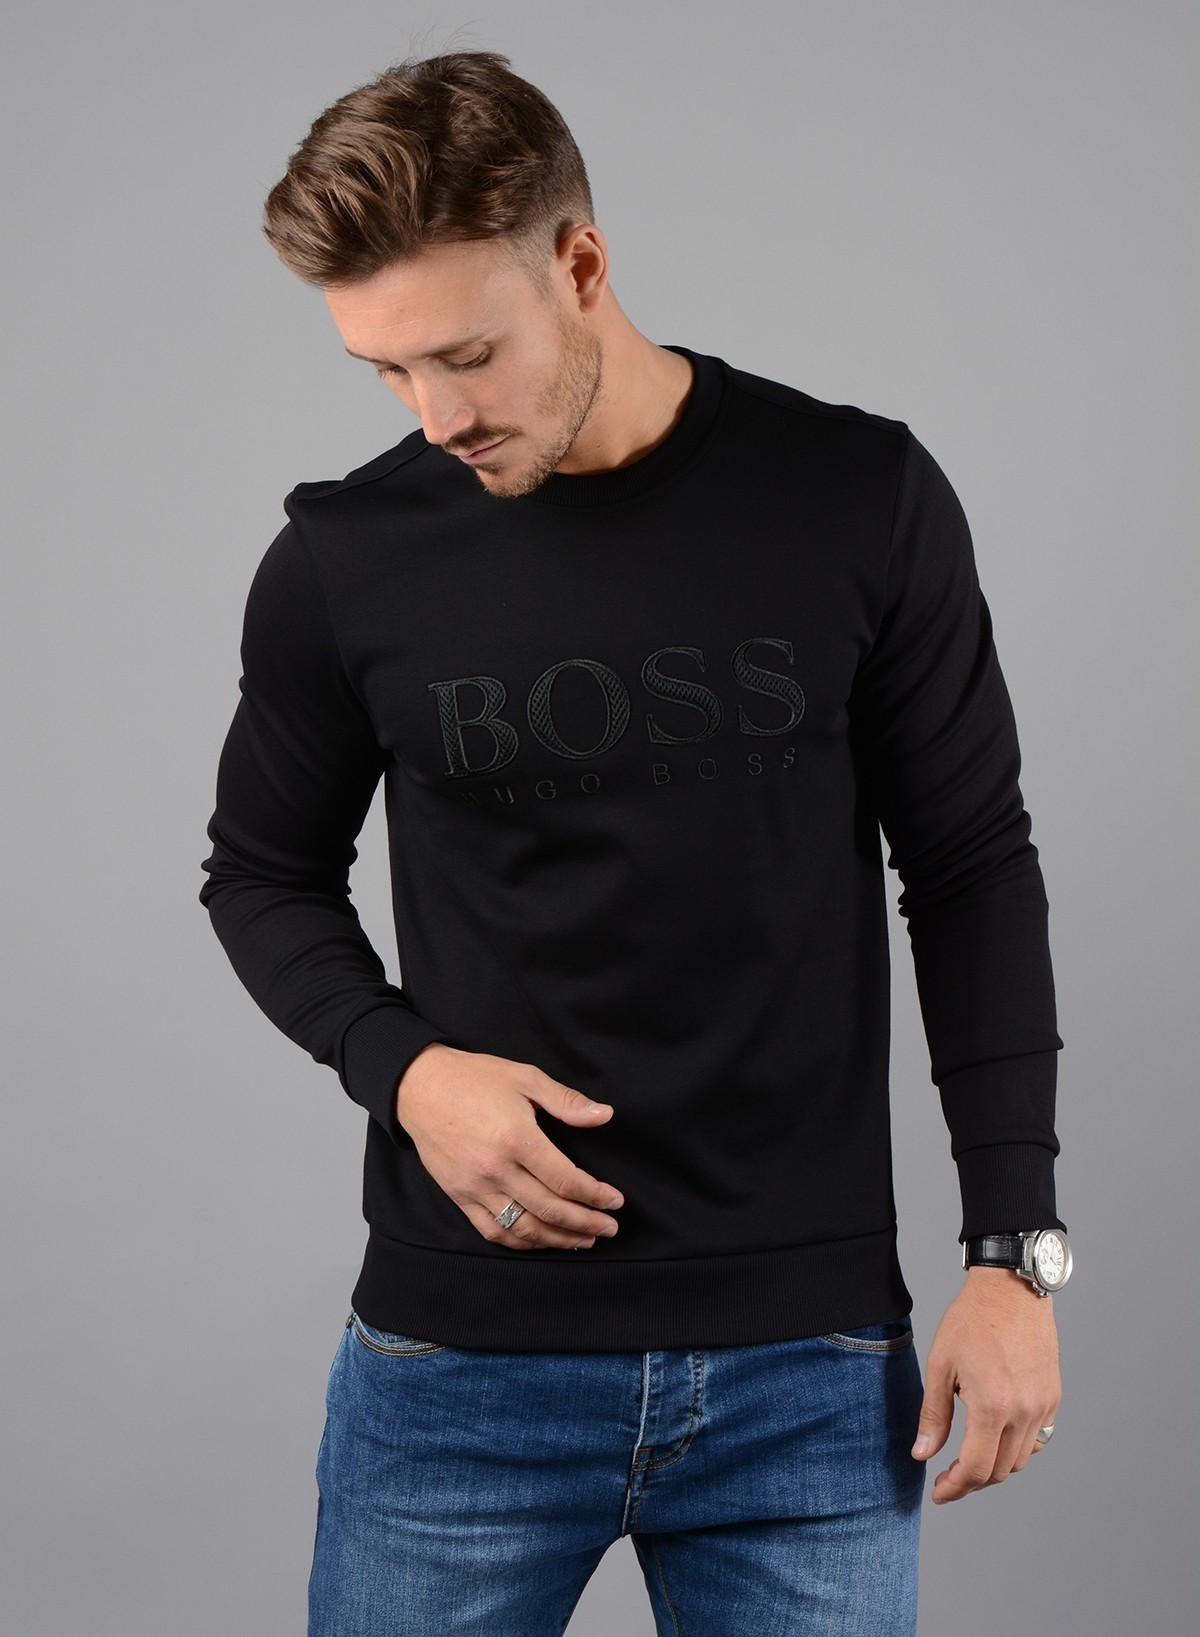 fde9d29c2c 420 x 573. 1200 x 1800. 1200 x 1560. 1200 x 1856 Salbo Slim Fit Sweatshirt  in Black